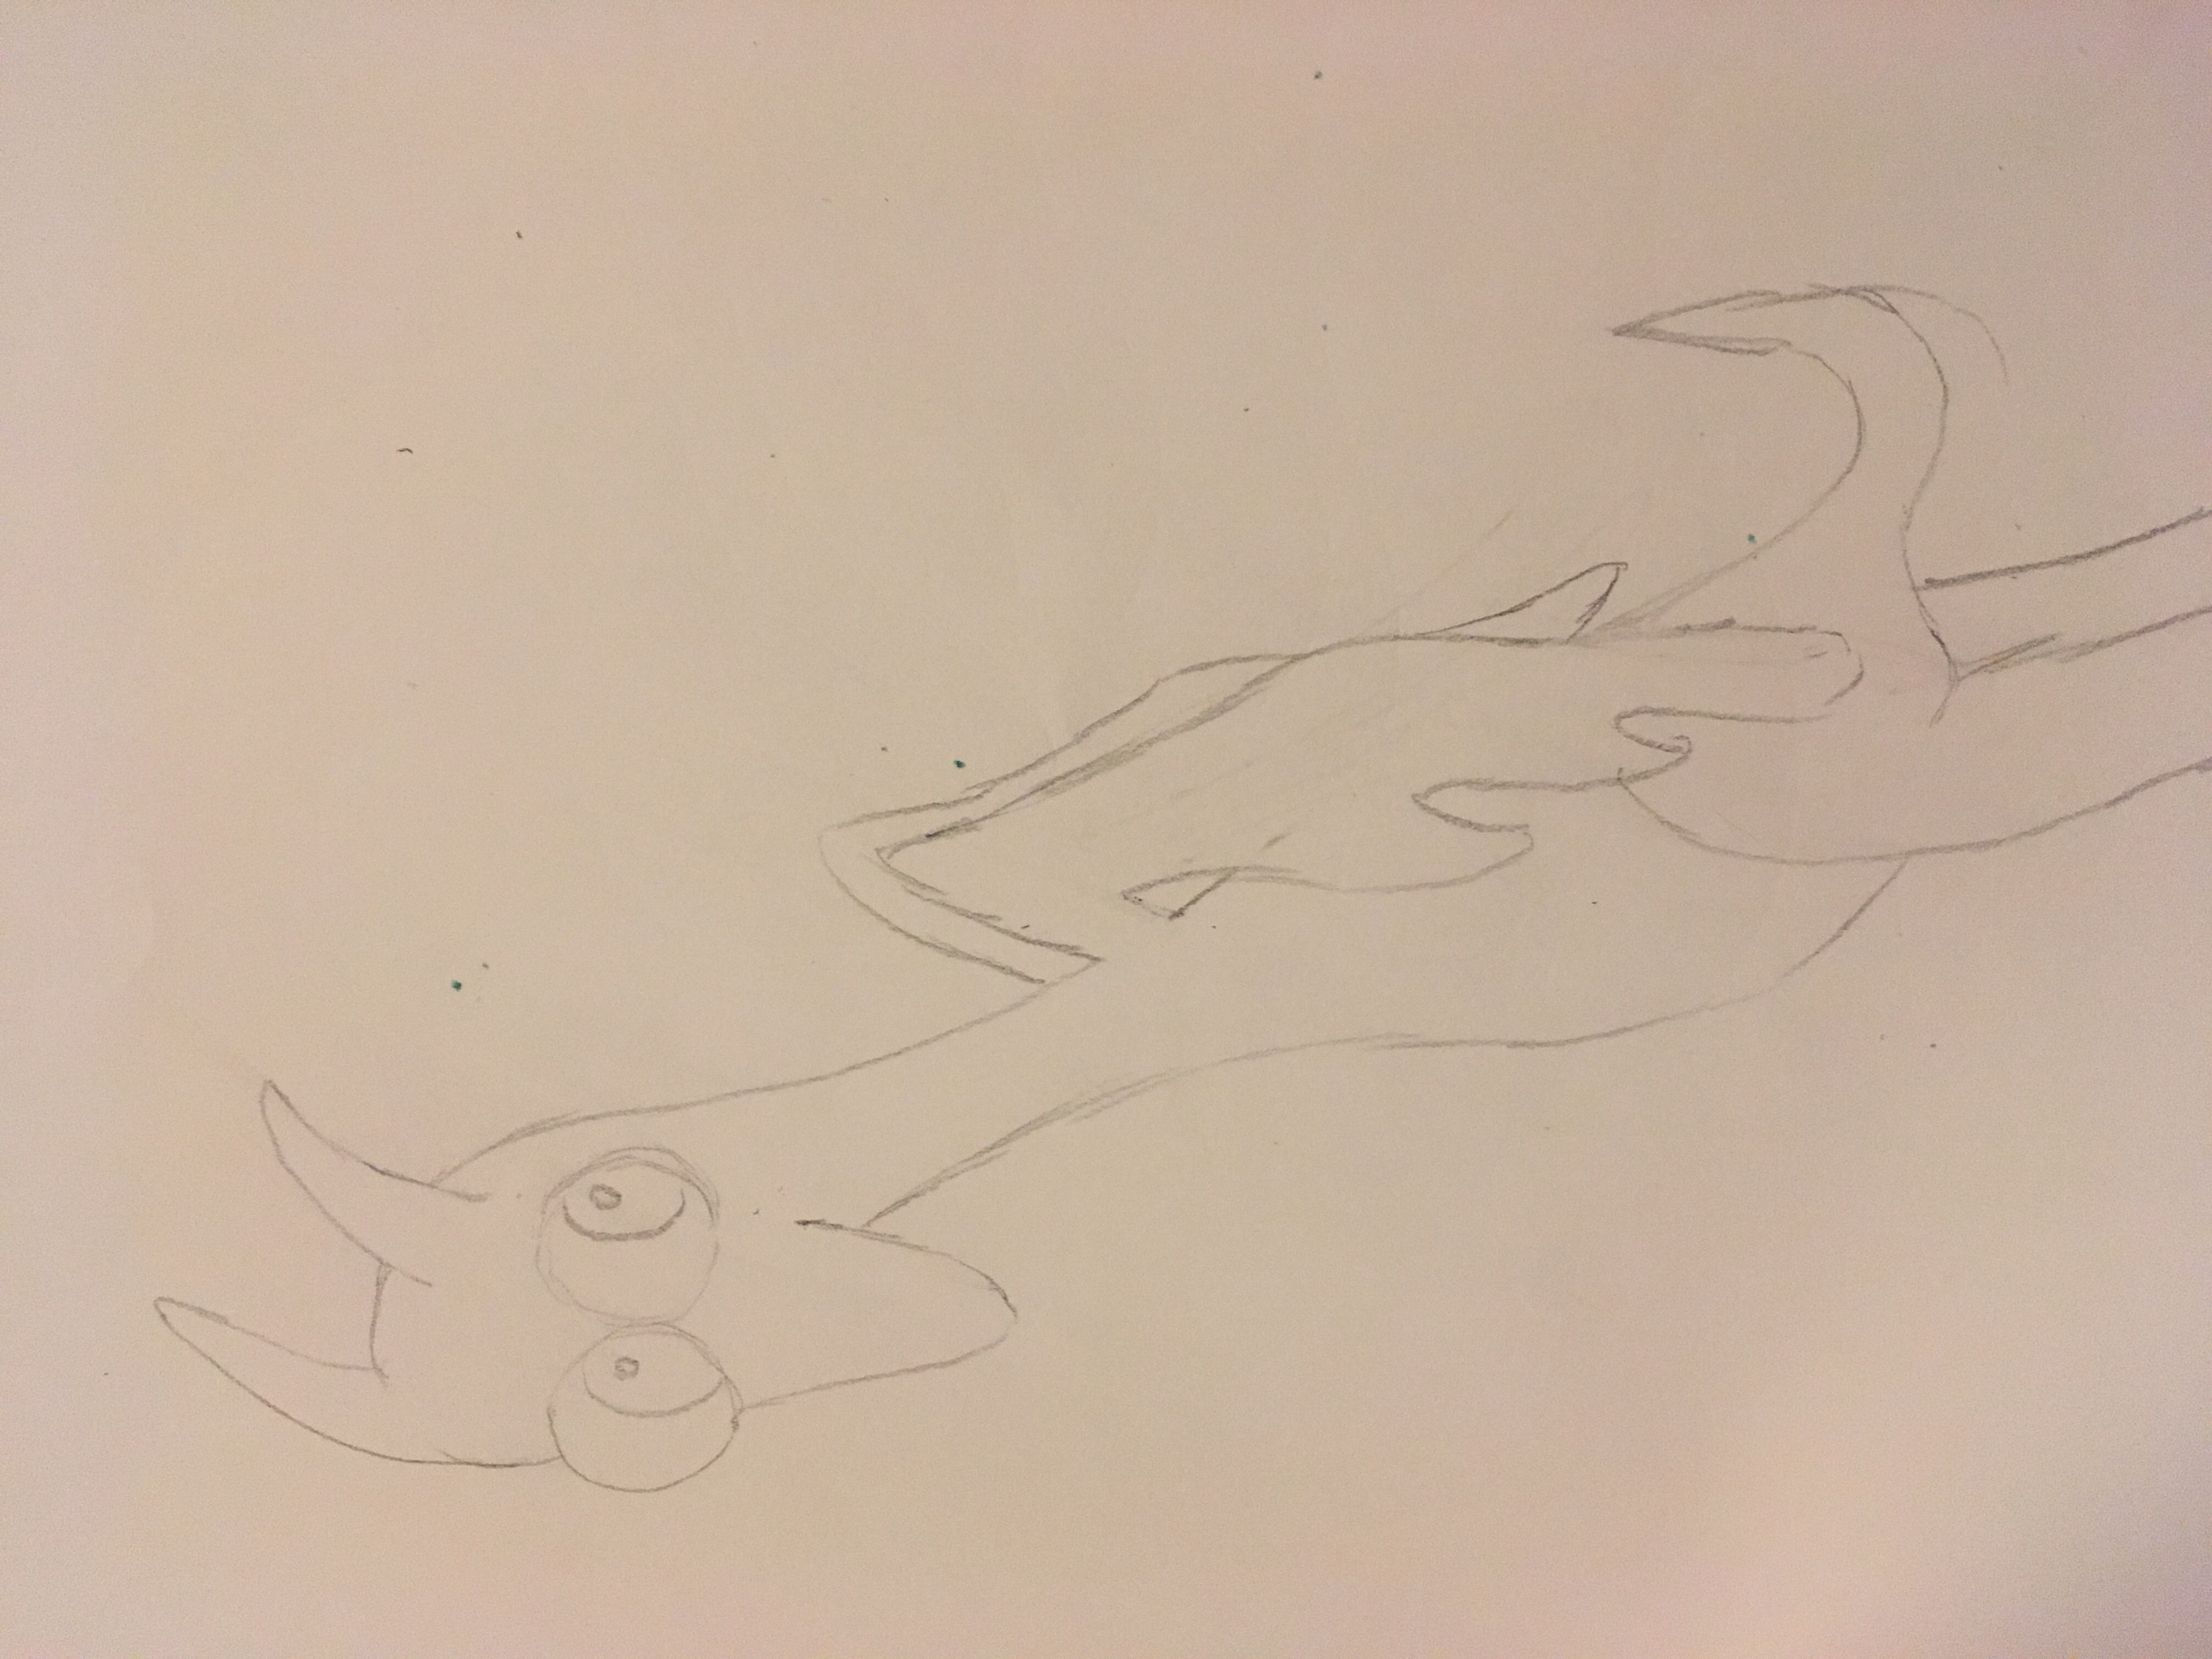 Dragon in pencil that kind of looks like a chicken